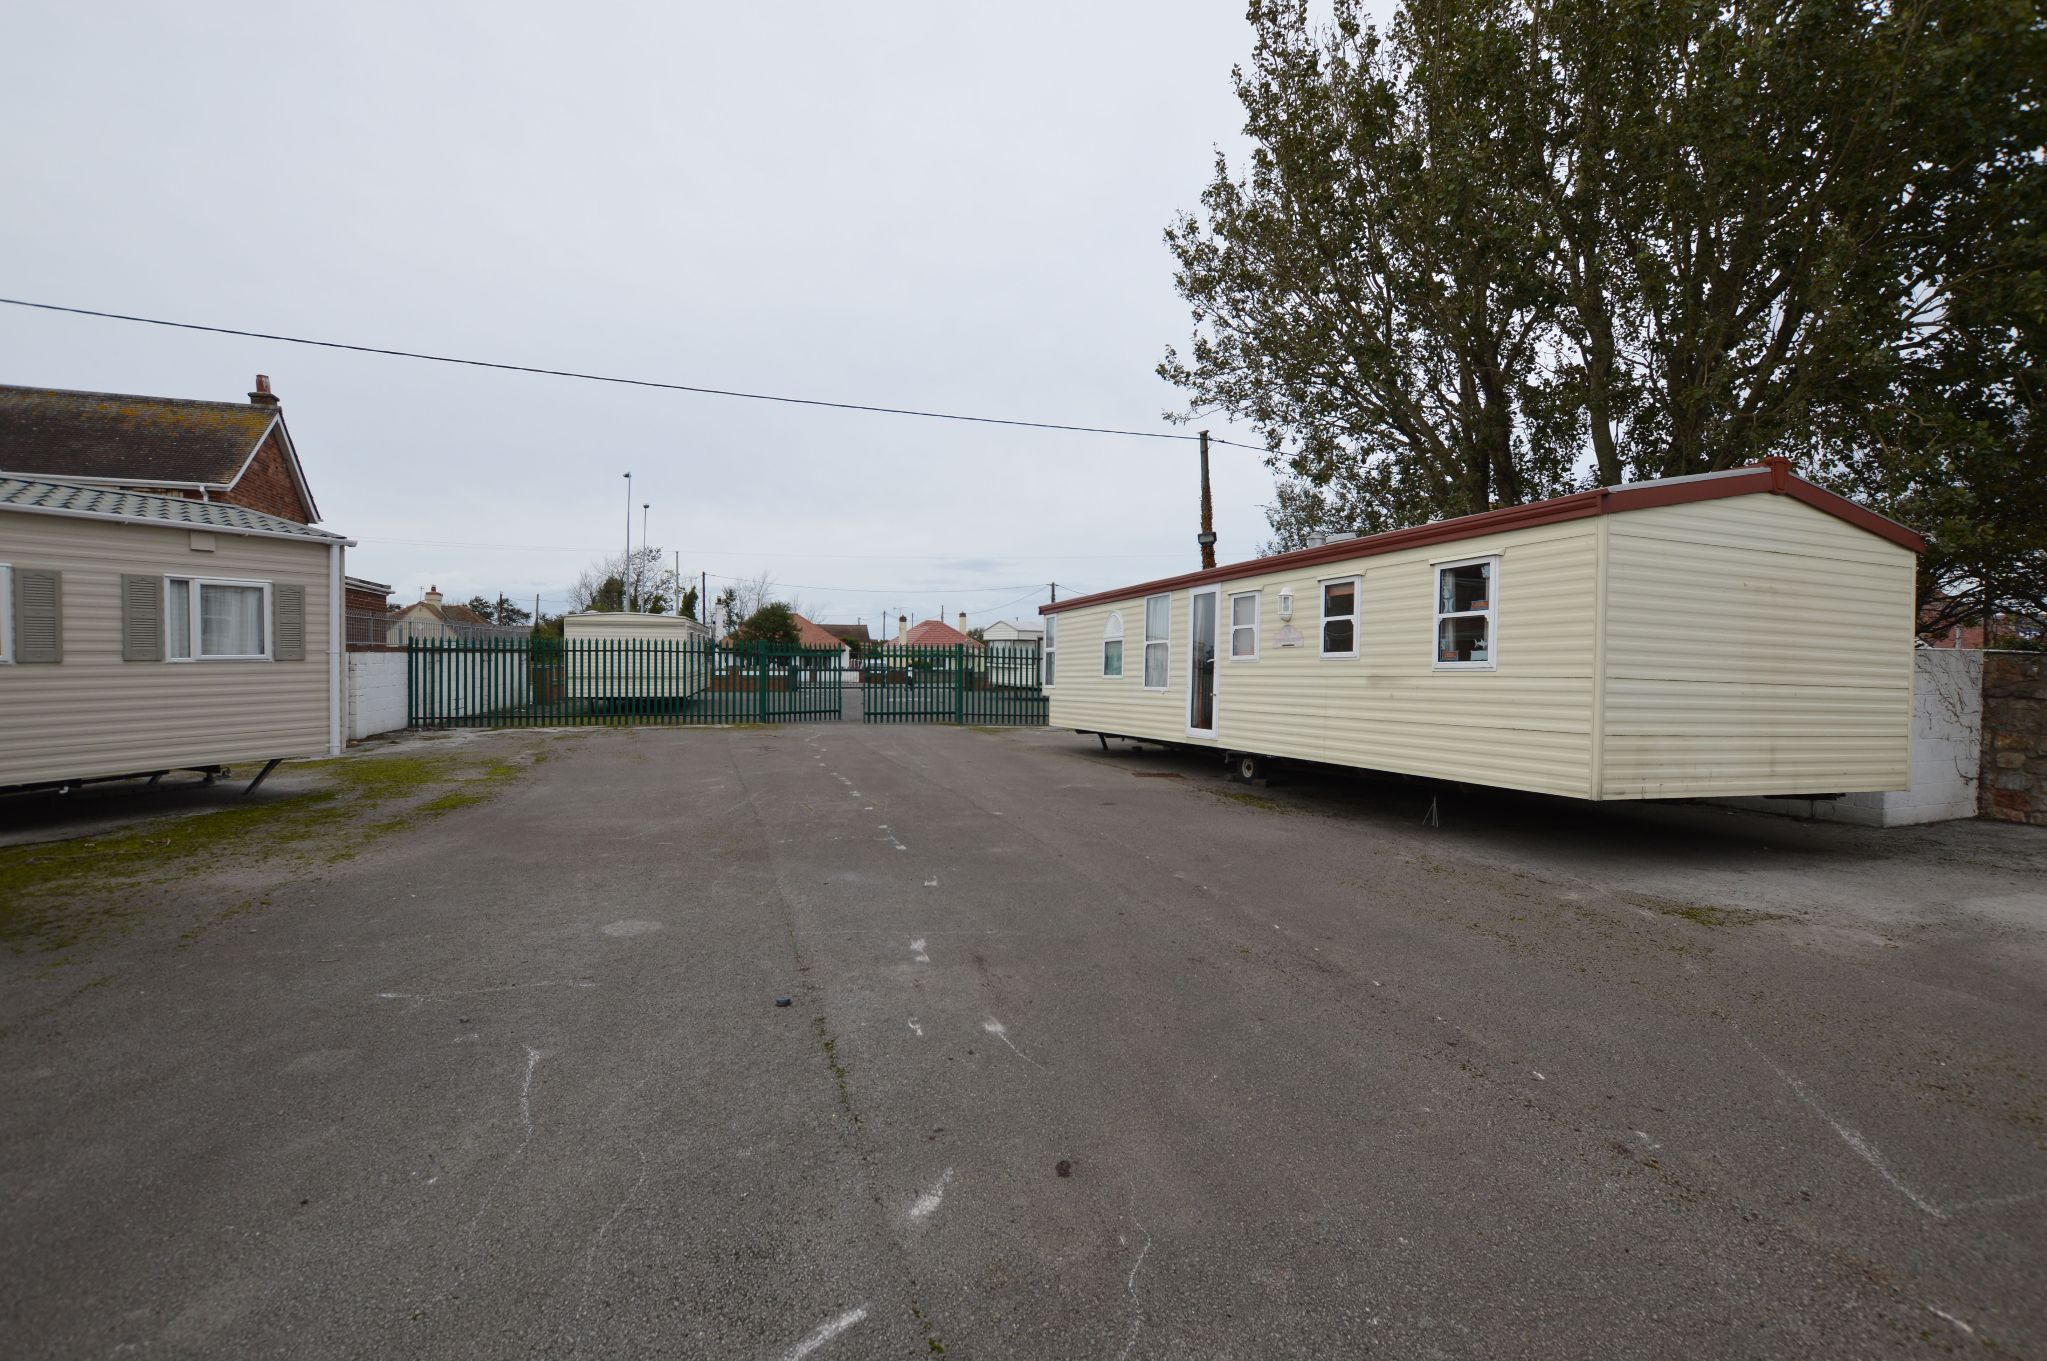 Office For Sale in Towyn - Lot View 2